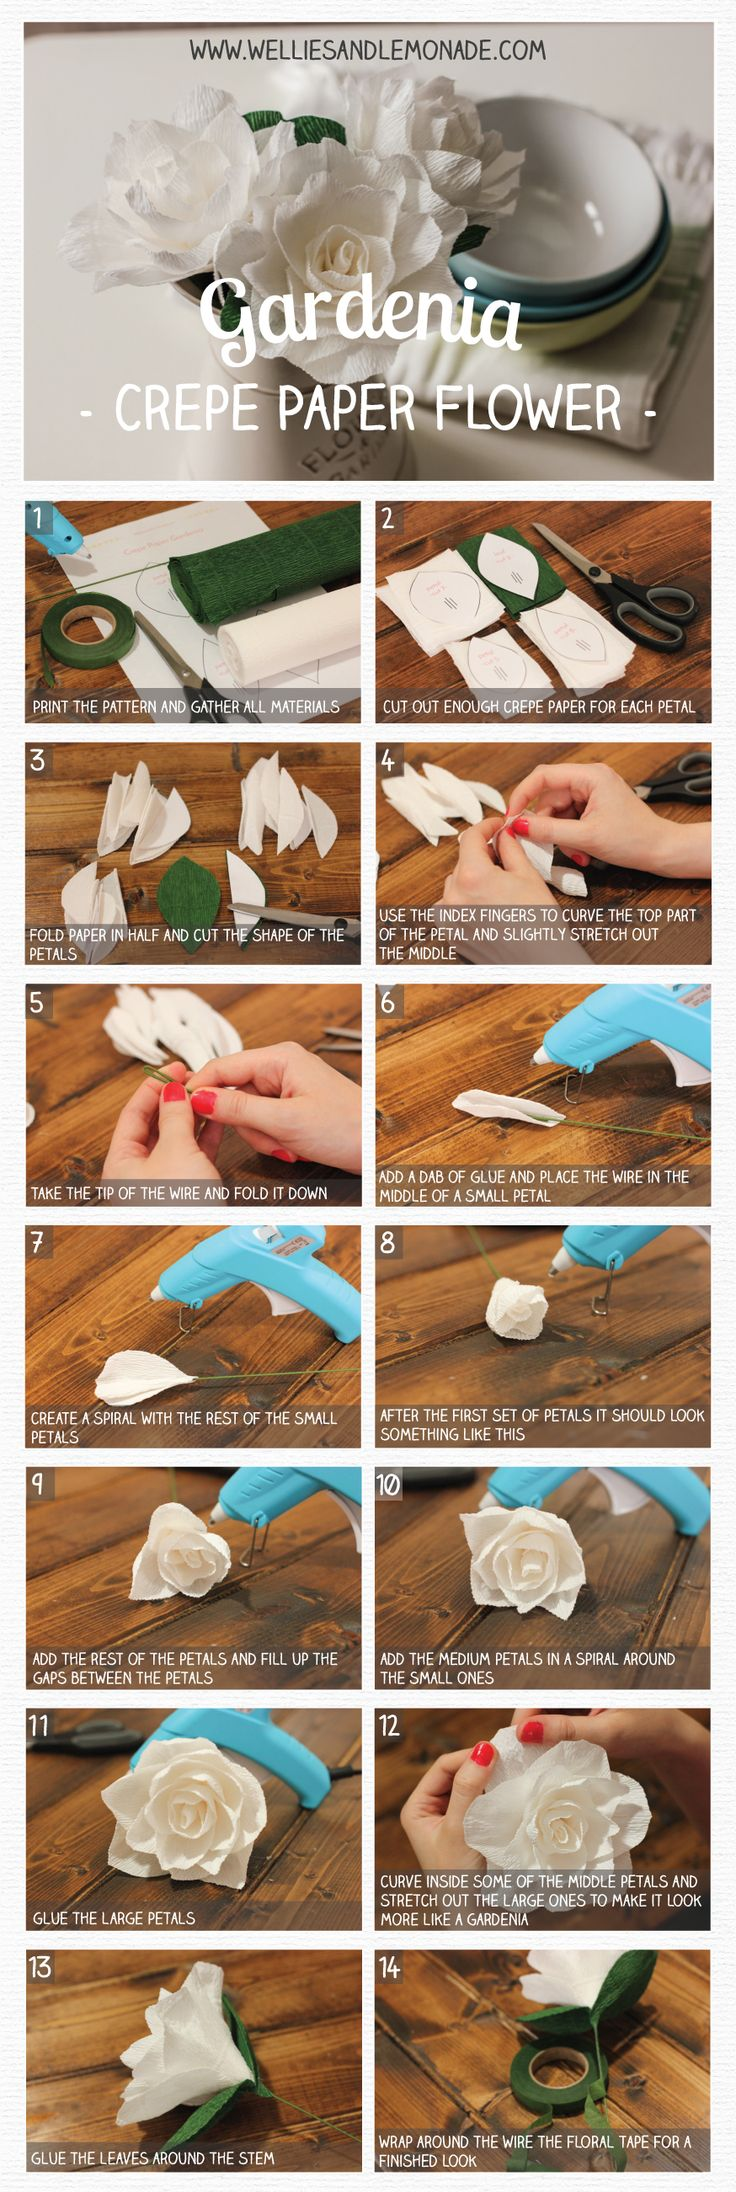 Get your free template for this gorgeous crepe paper gardenia and make your own today. Find more flower tutorials at http://www.welliesandlemonade.com/